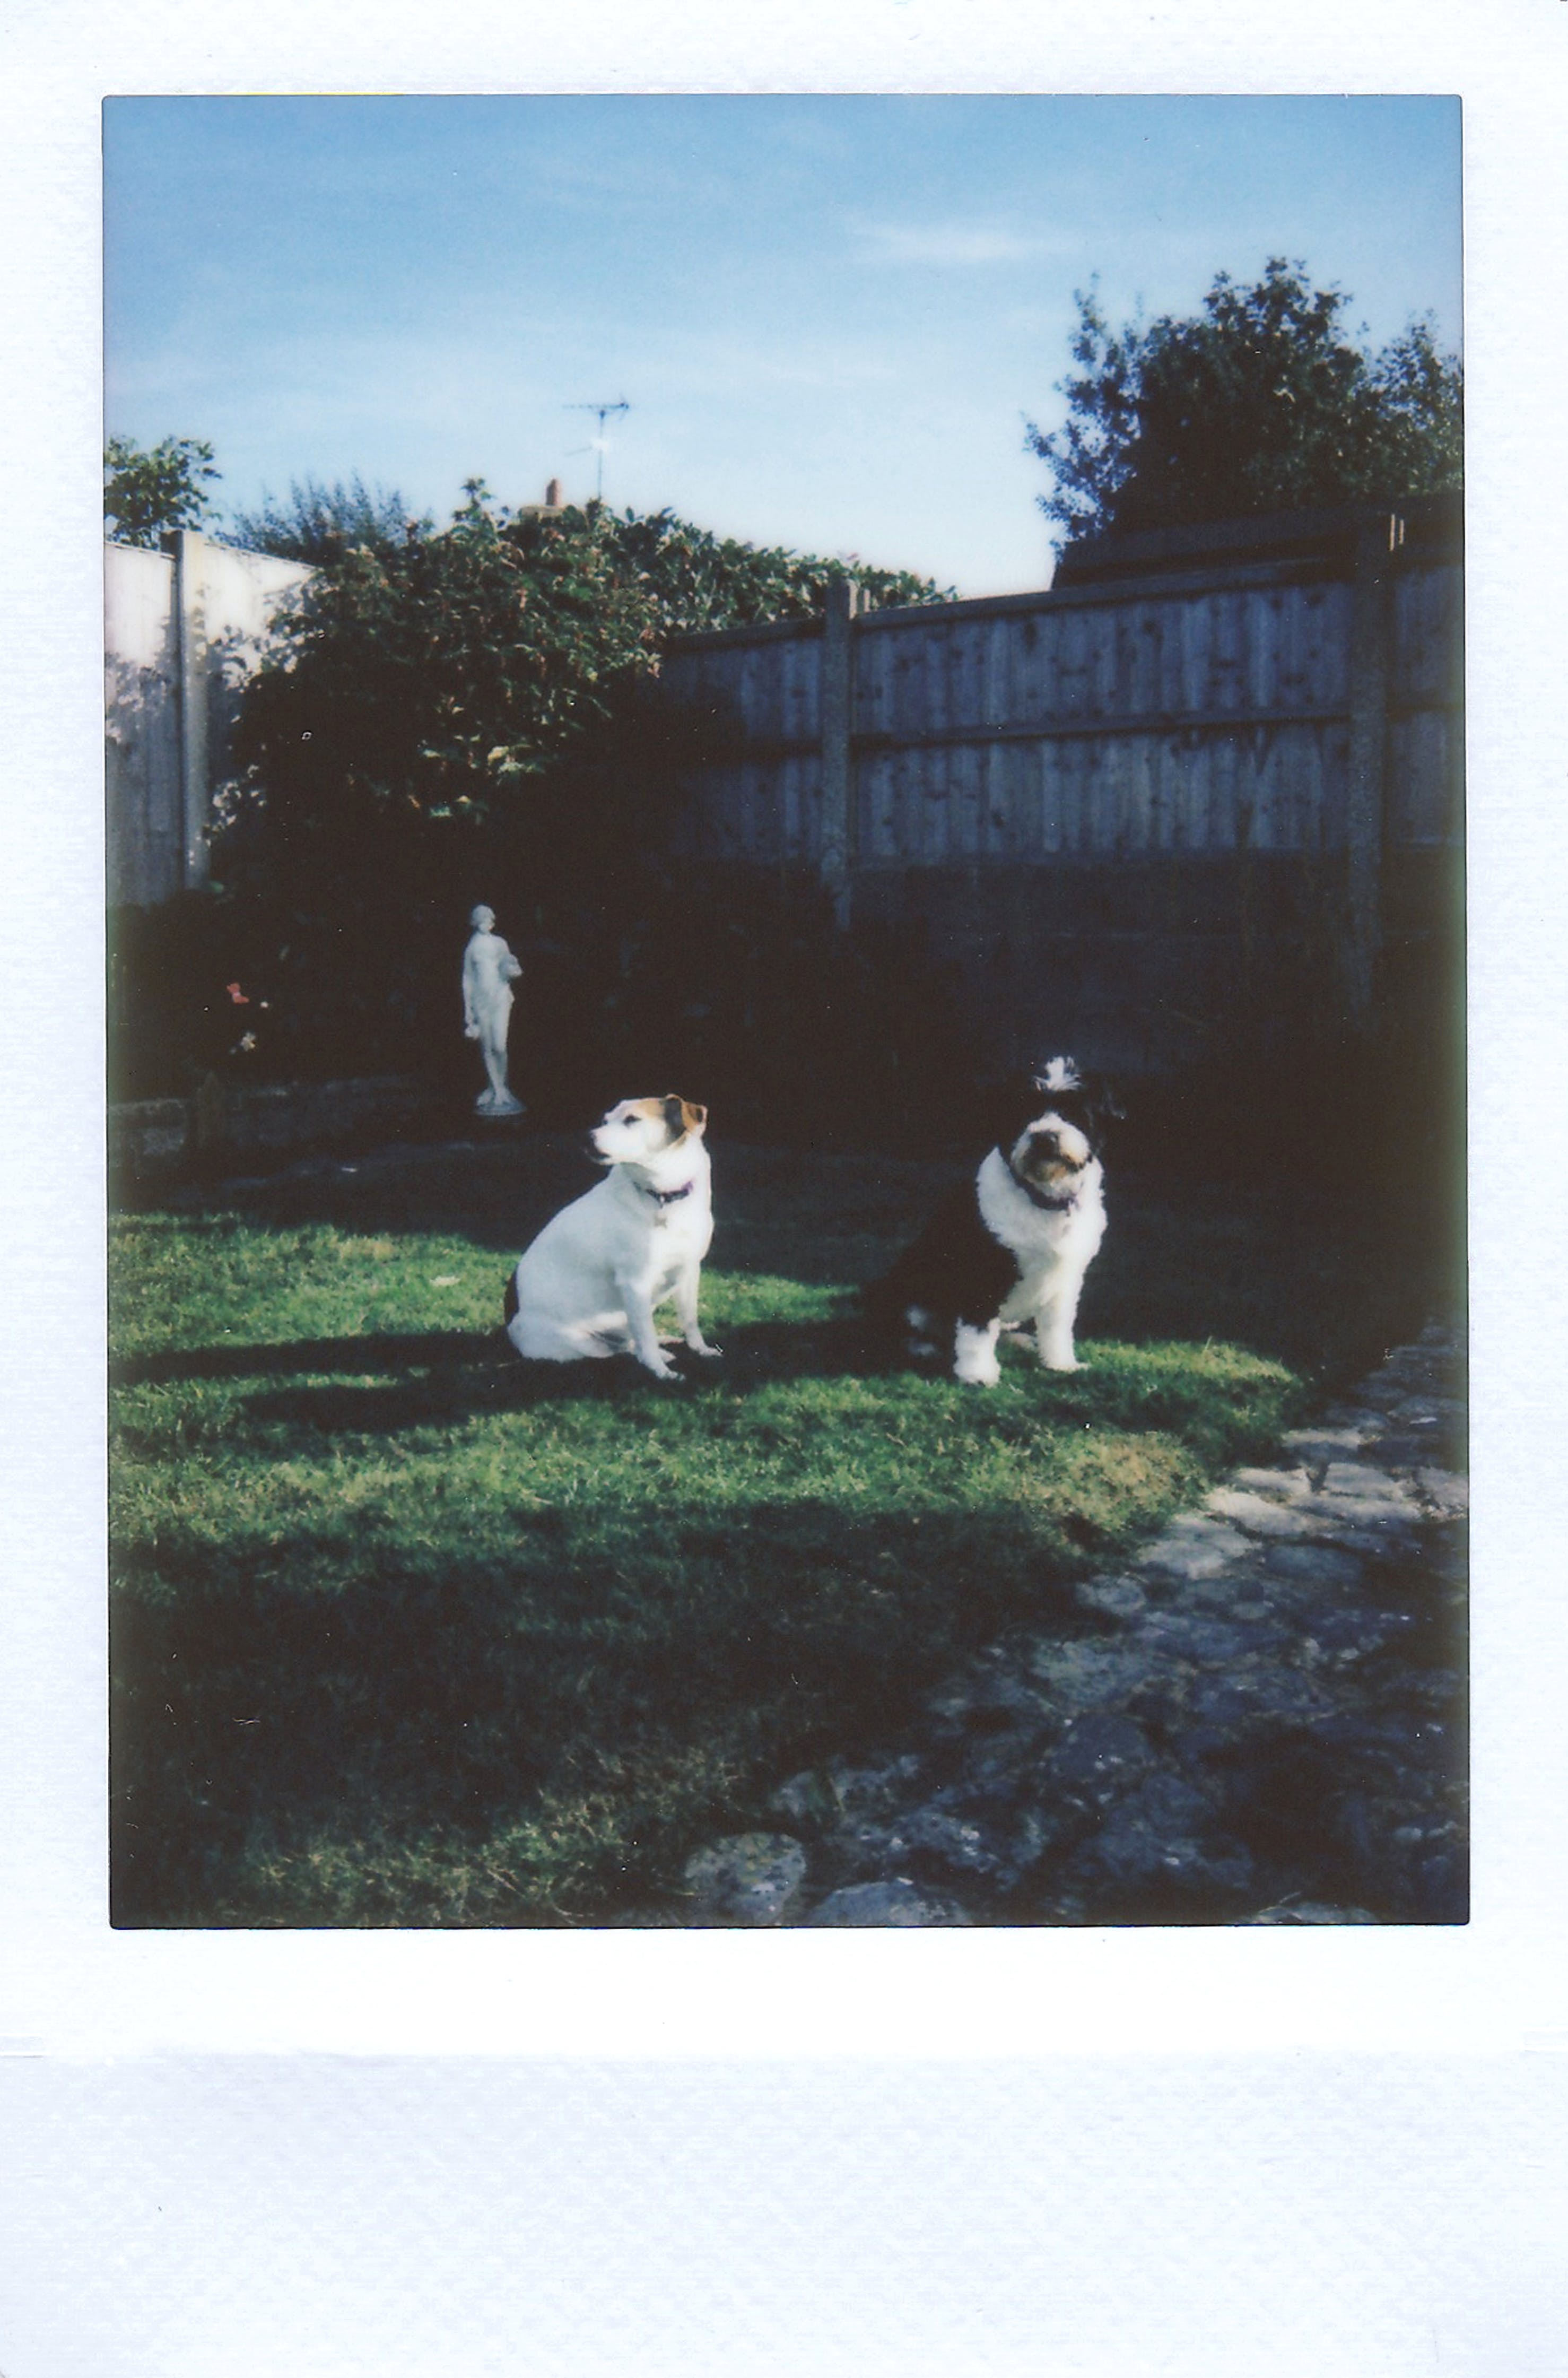 Two Dog Sitting on Lawn Grass Near Privacy Fence